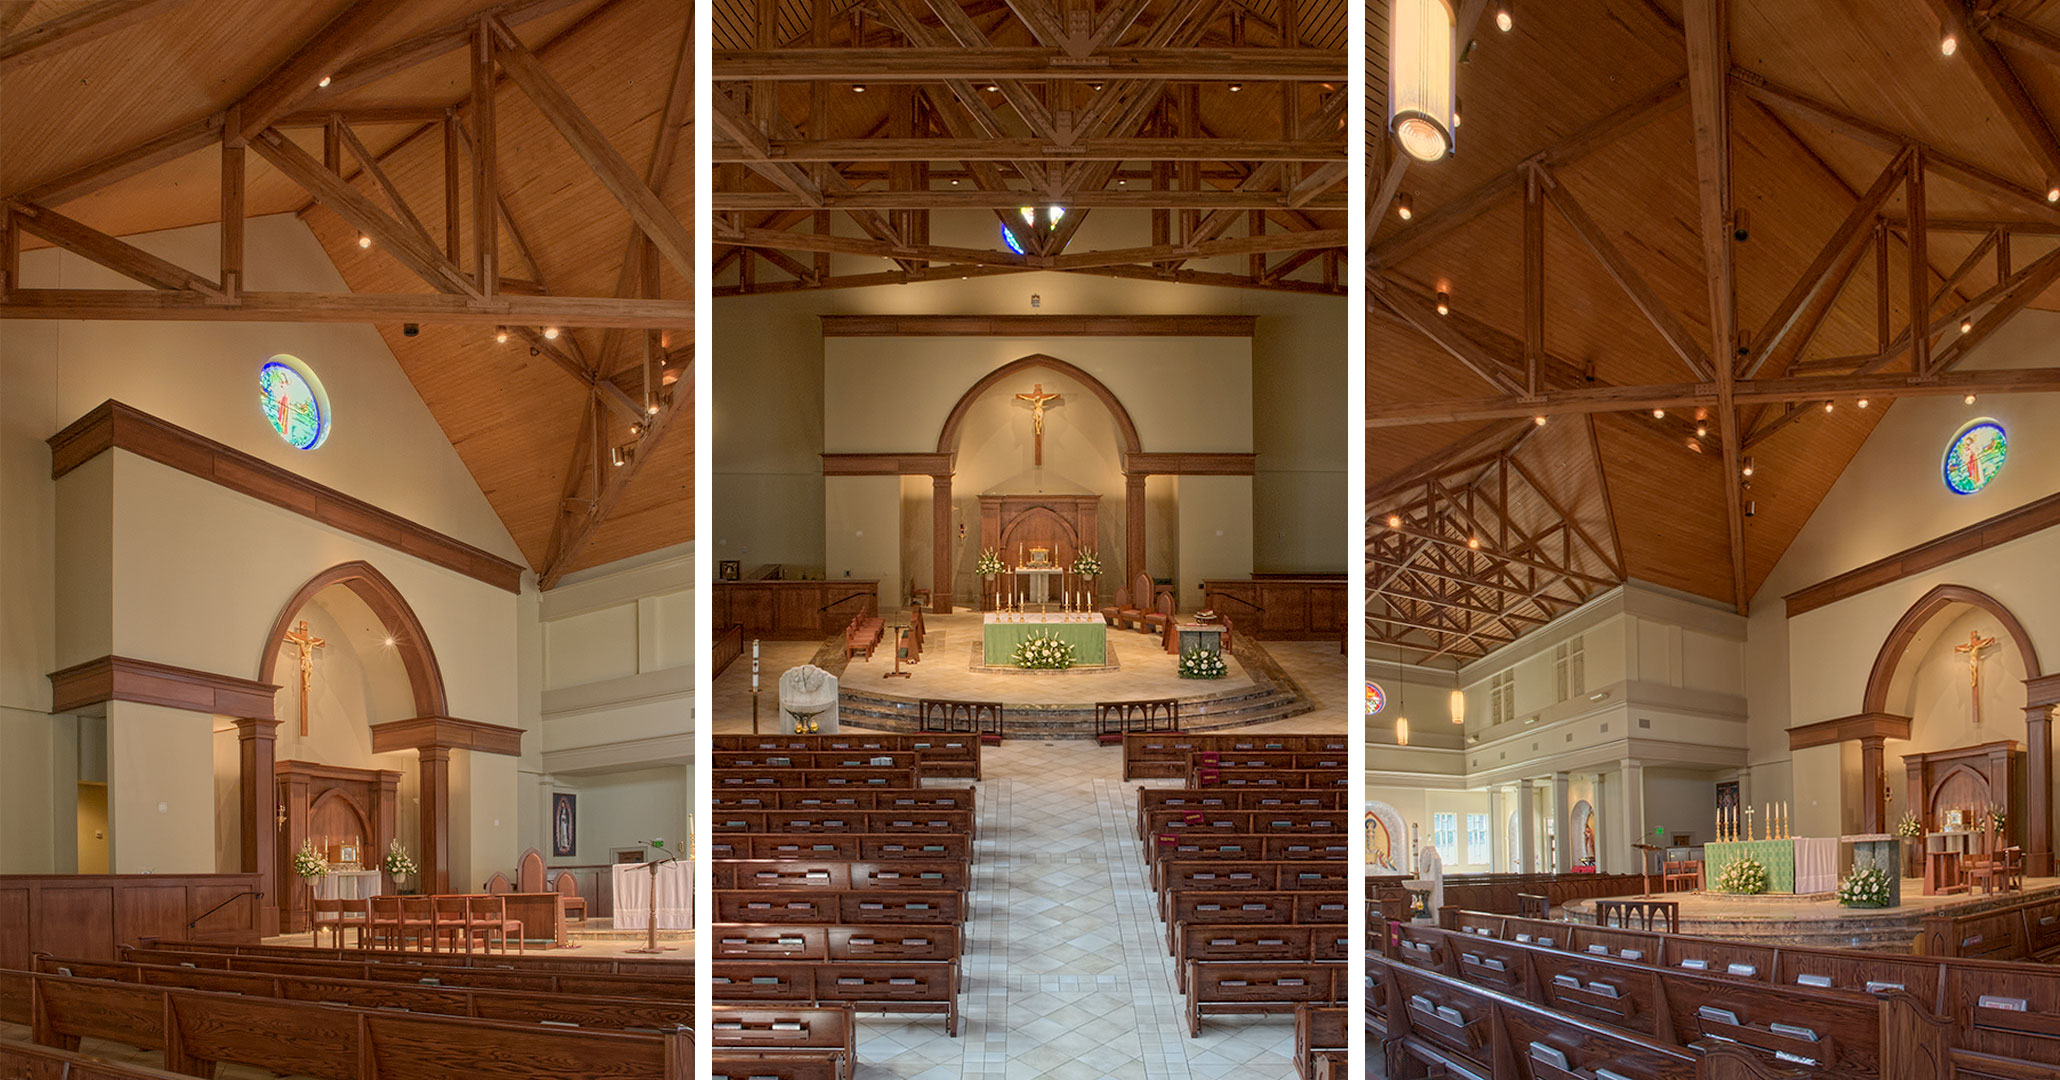 St. Mark's Catholic Church was designed by Boudreaux architects and interior designers.